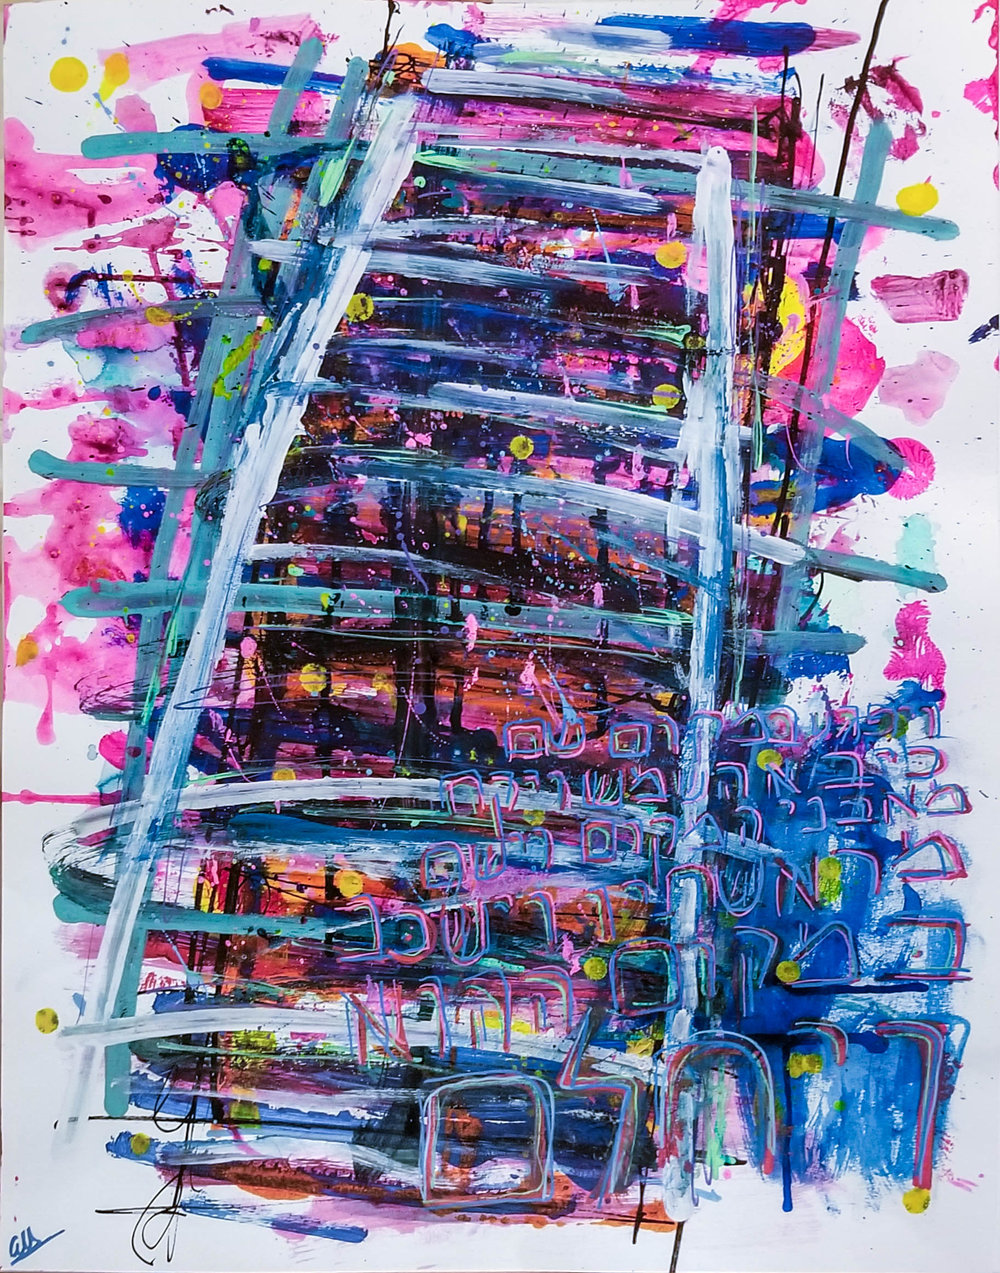 The Ladder (Acrylic, Fabric Dye, Watercolour on Paper, 24 X 18 Inches, 2018)